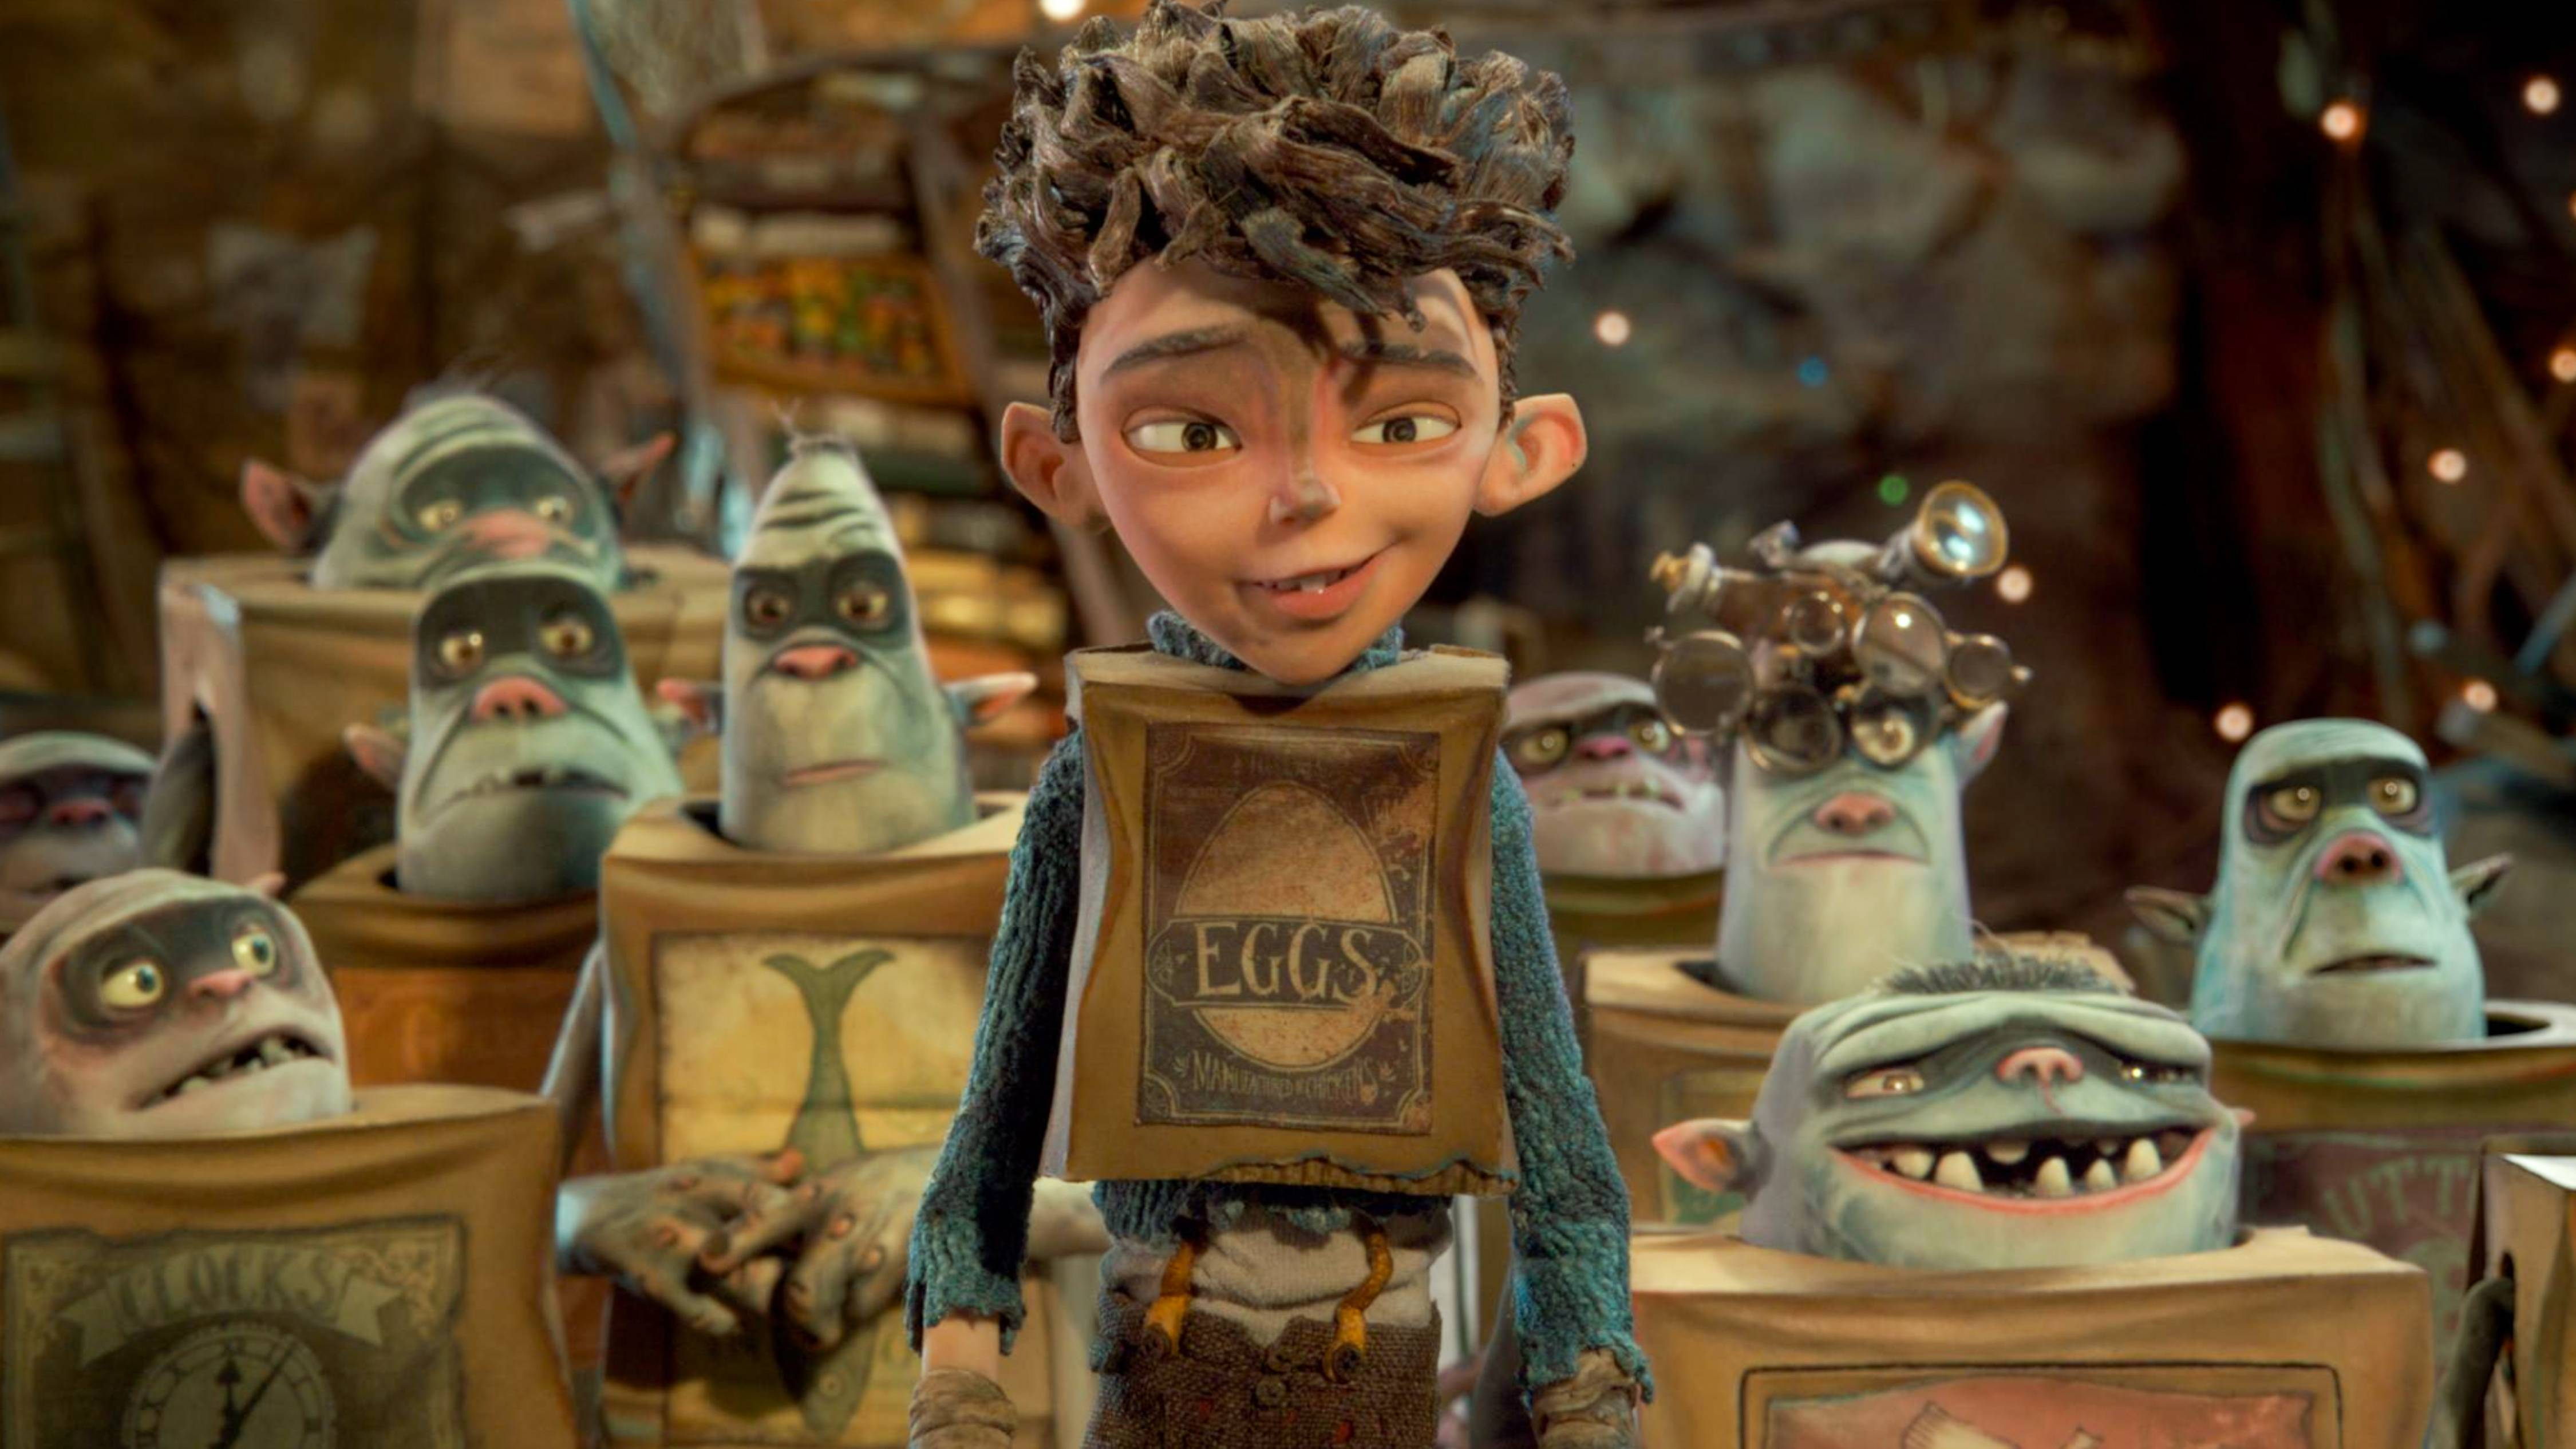 "If the world of ""The Boxtrolls"" feels real to moviegoers, that's because it is. From the cobblestone streets of Cheesebridge to the underground wonderland the boxtrolls call home, everything shown on-screen in the film really exists at Laika Studios just outside Portland, Oregon."